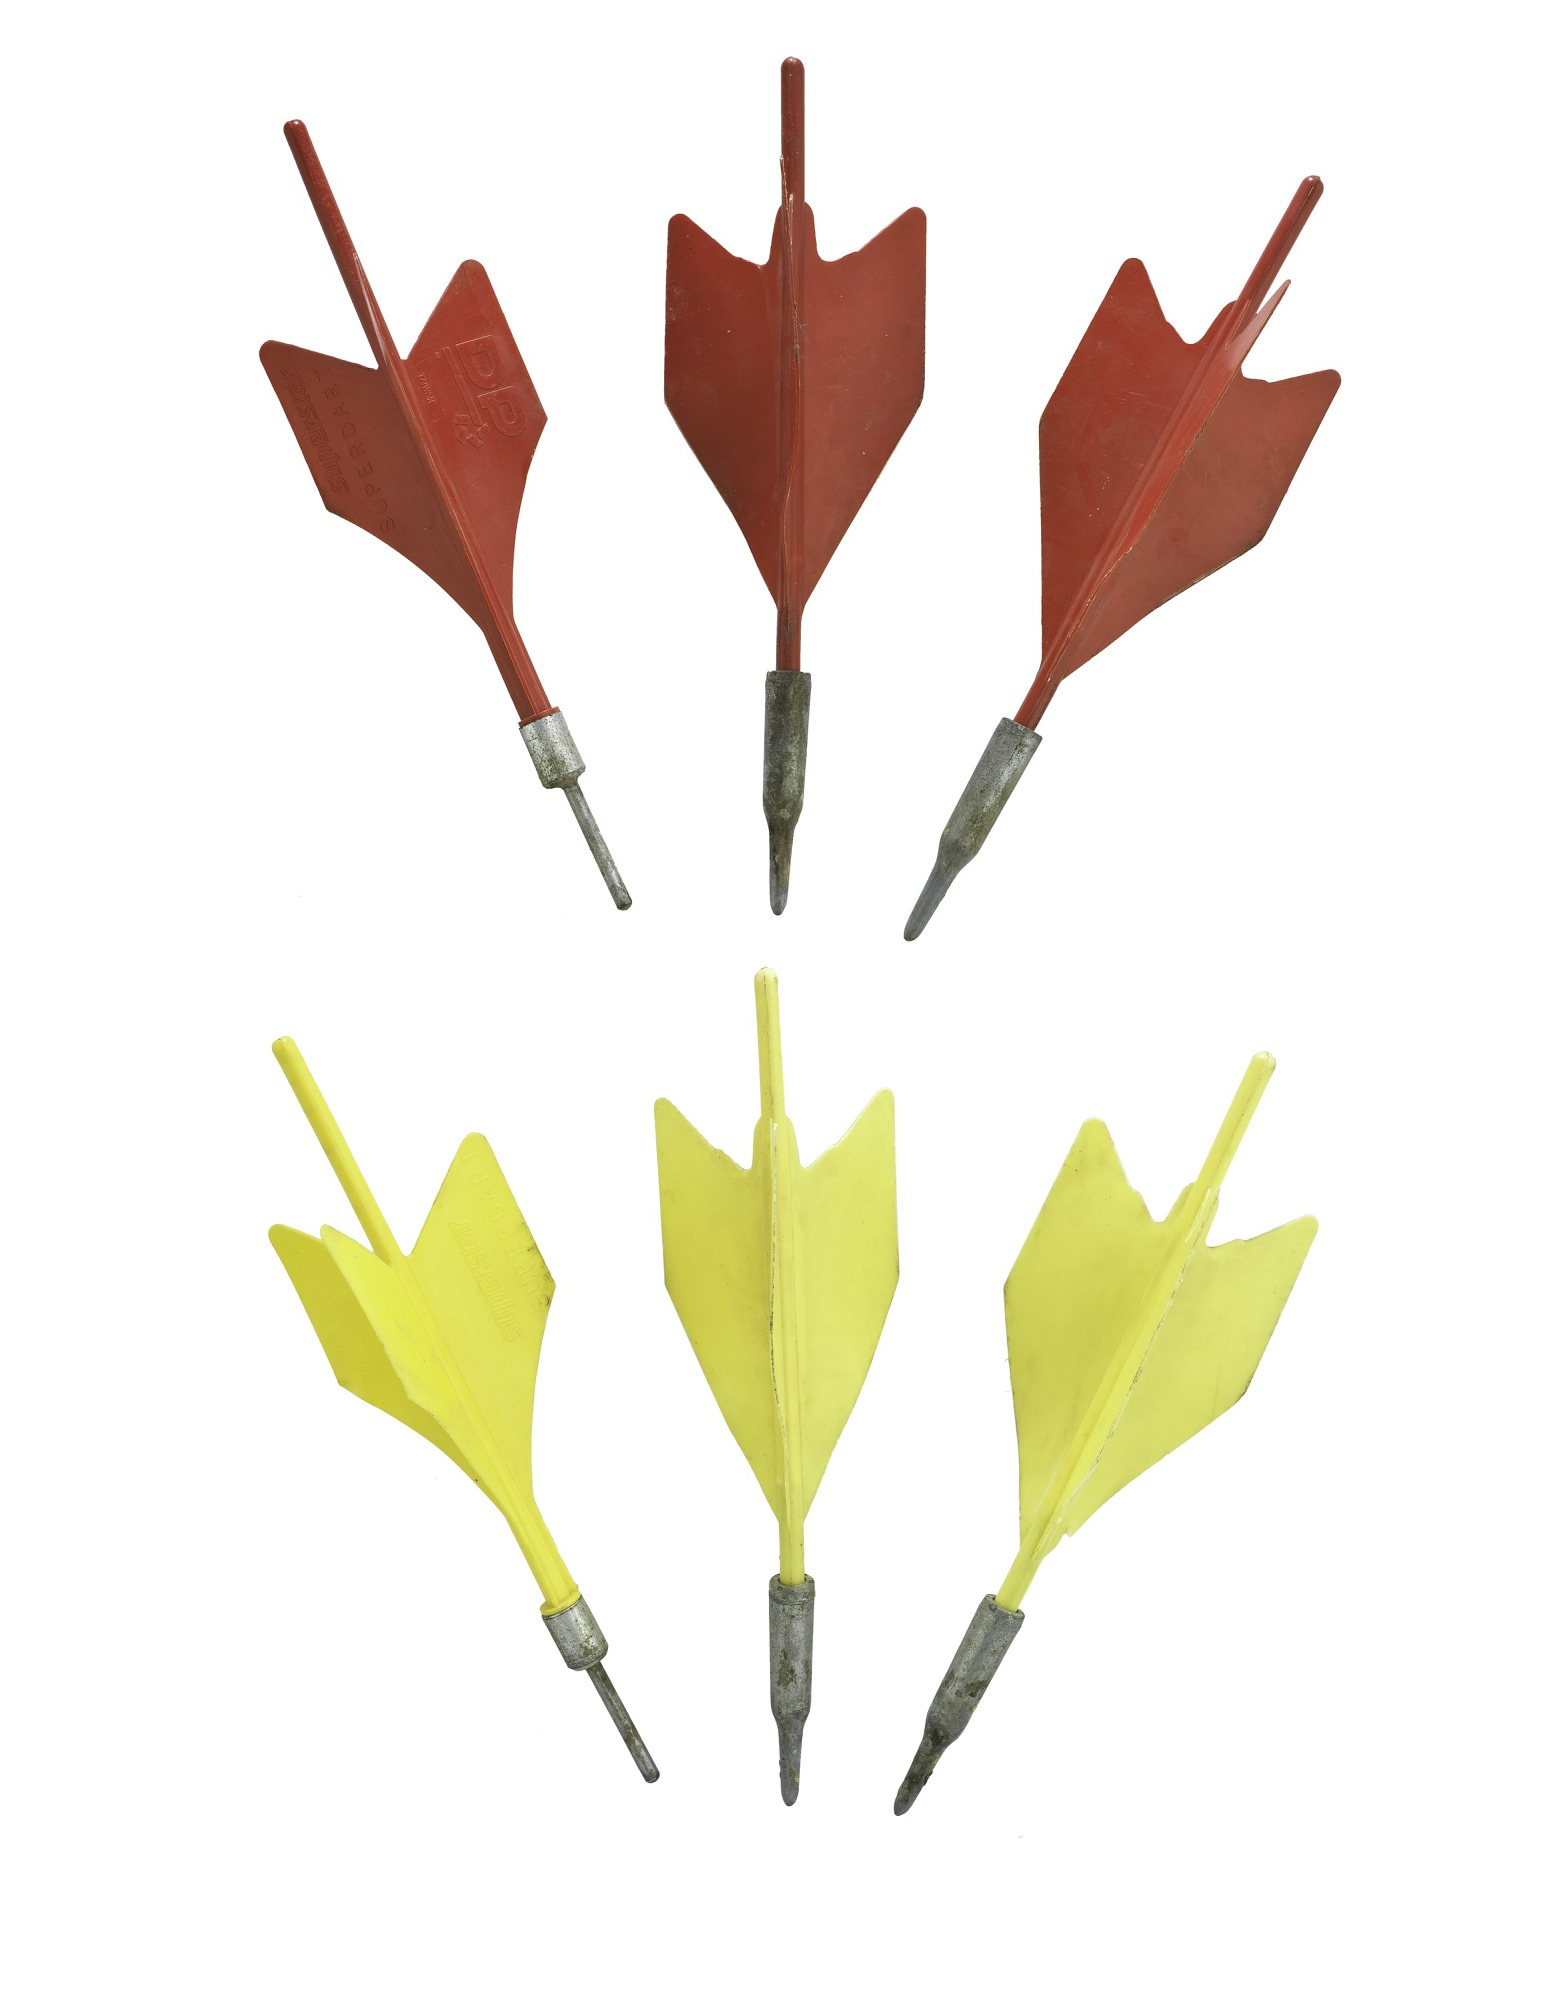 images for Lawn Dart Game